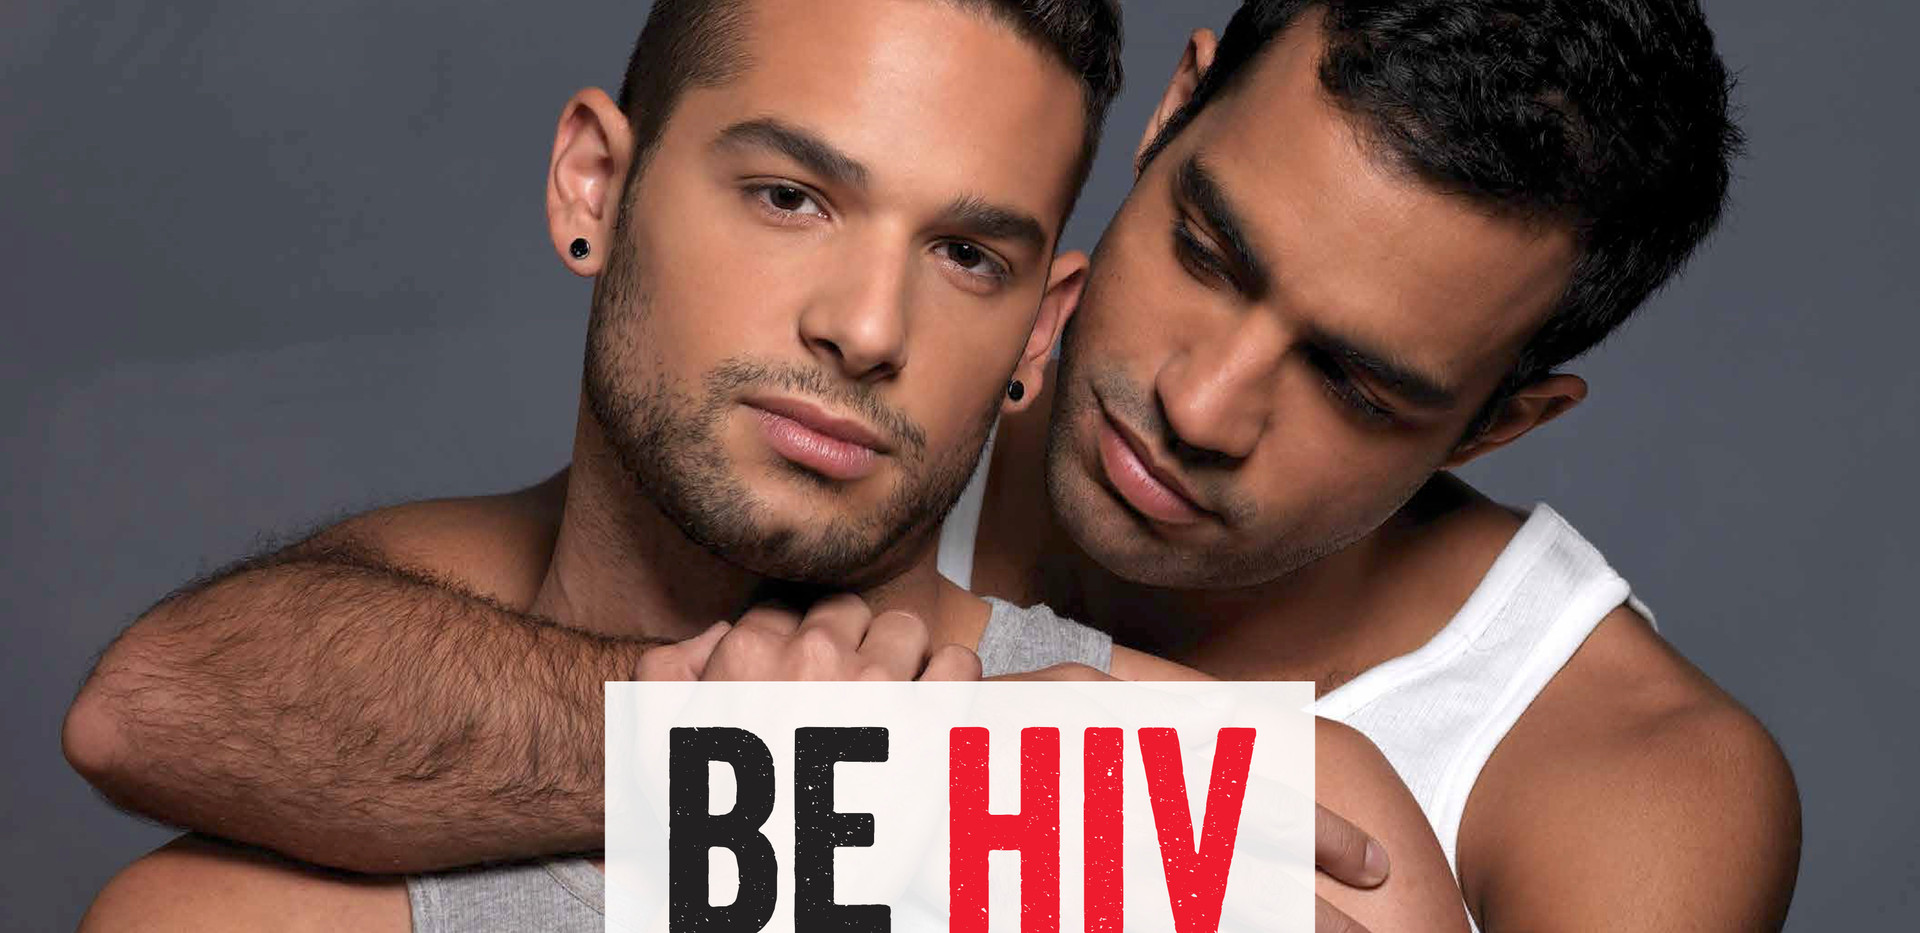 Chris Costa and Johnny Sibilly - Be HIV Sure